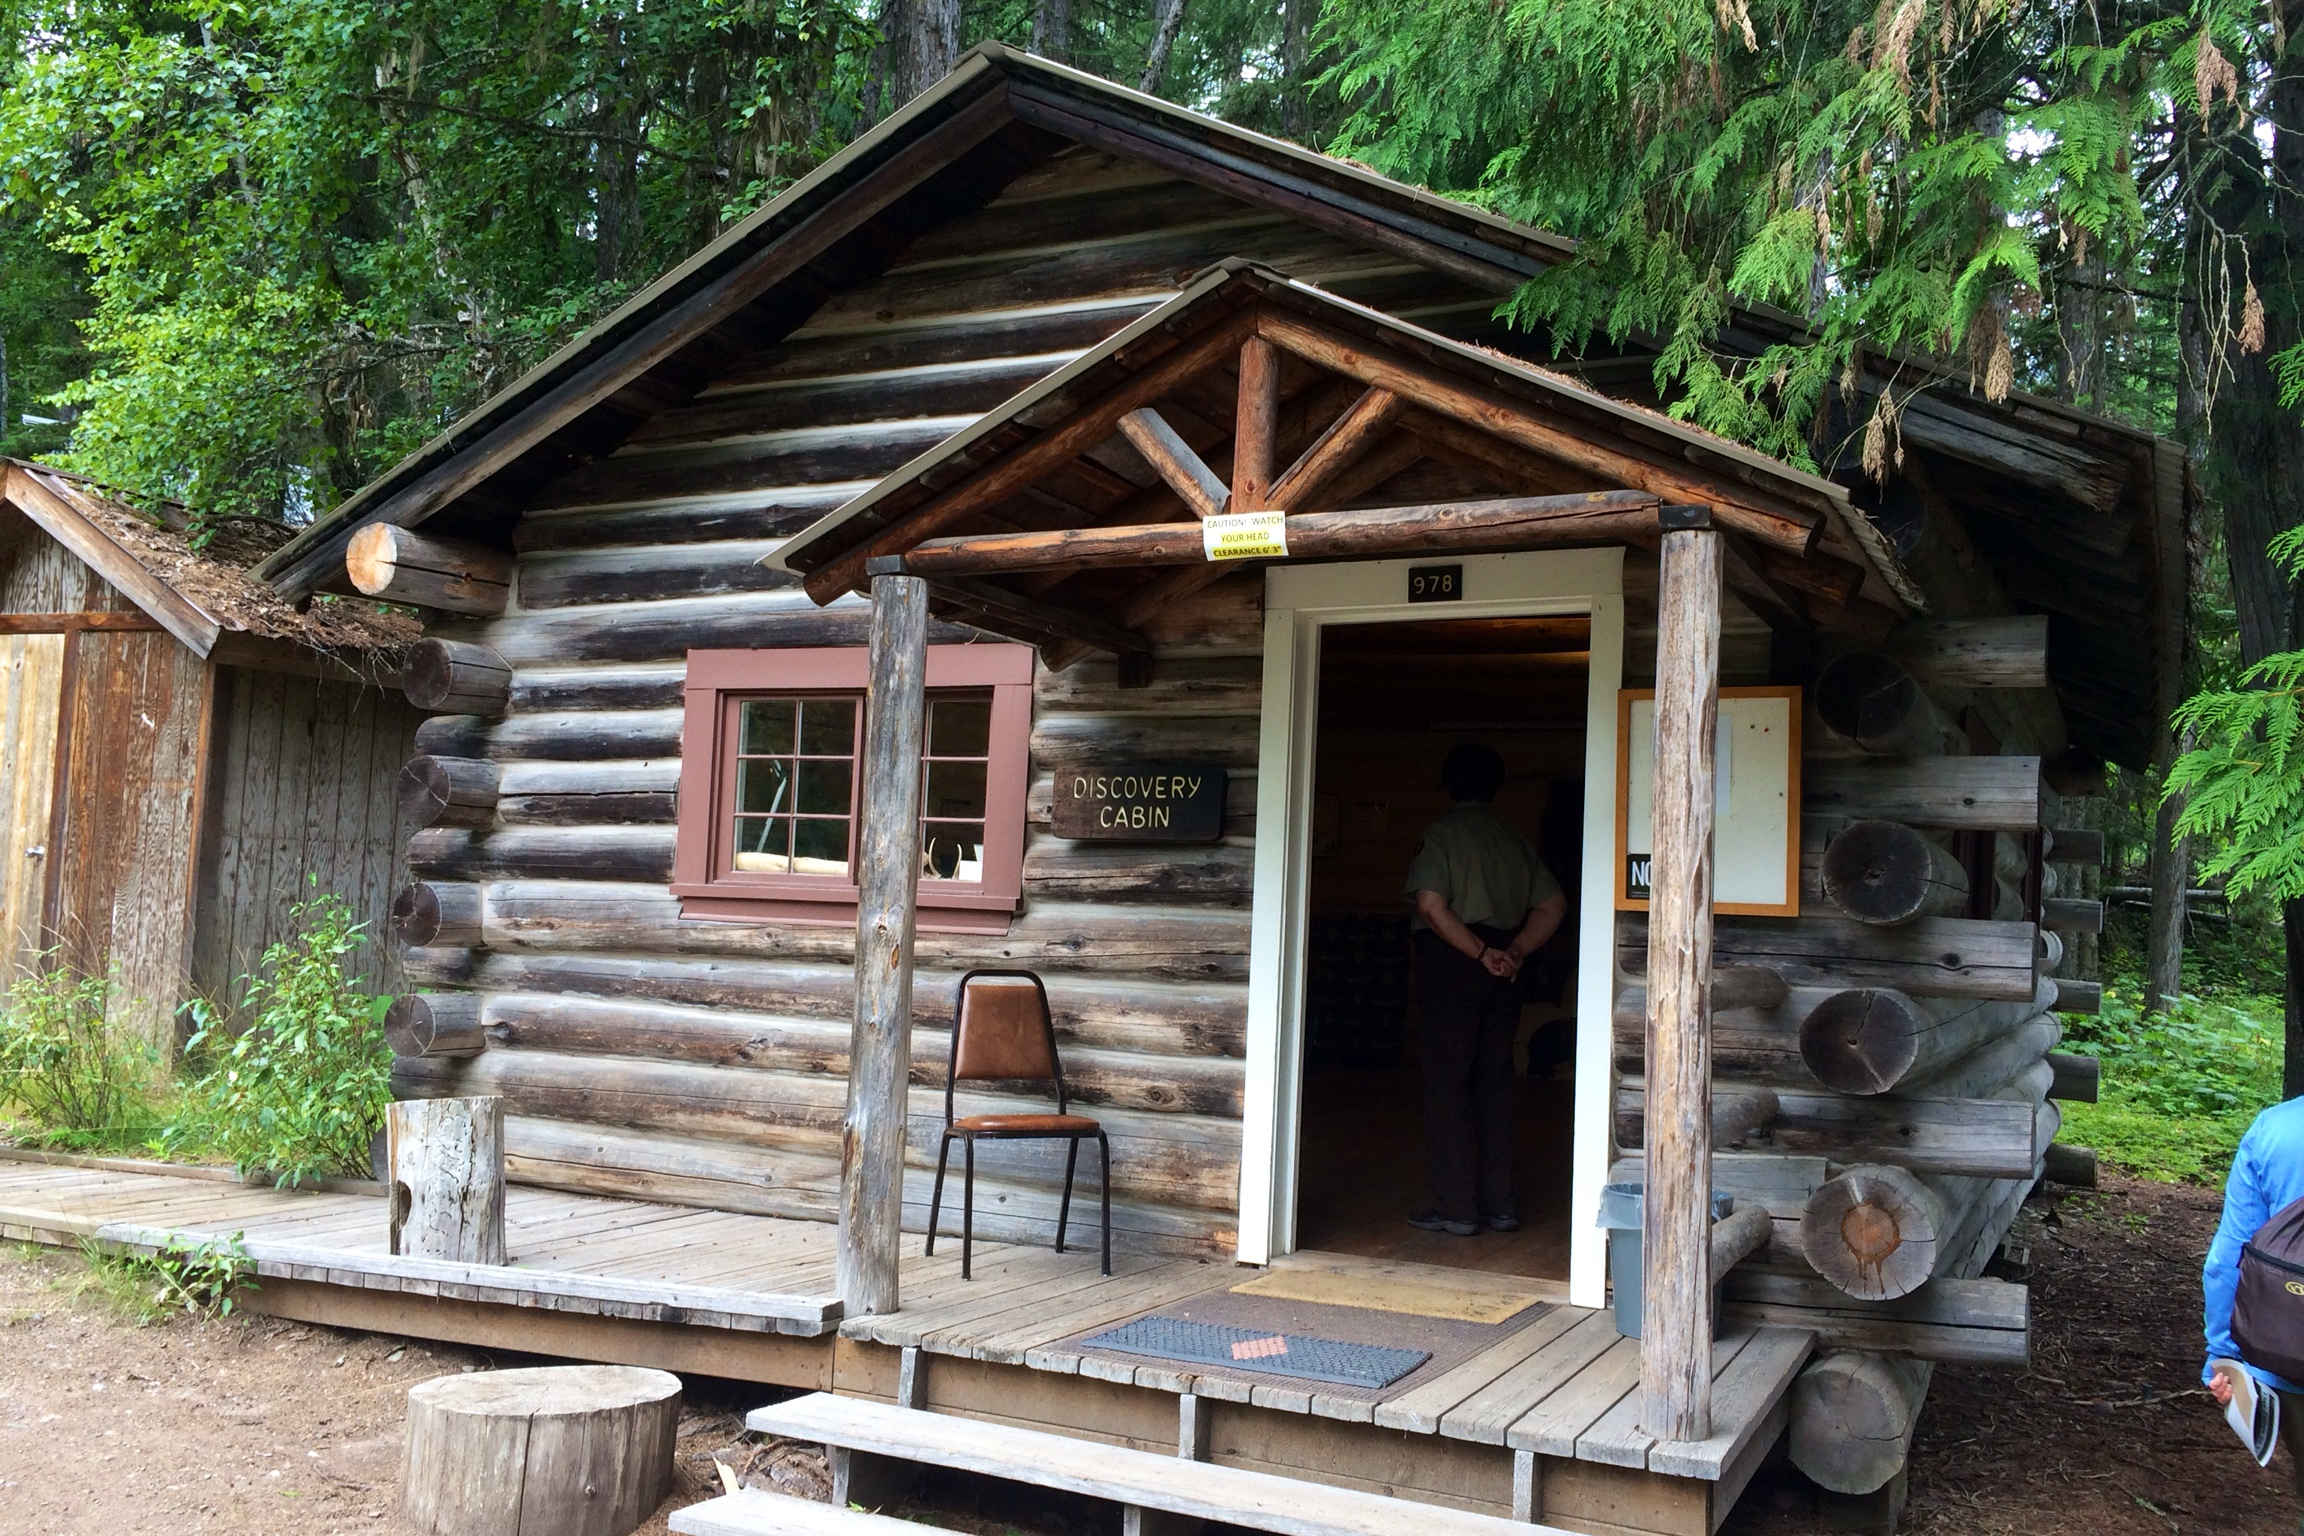 Discovery Cabin